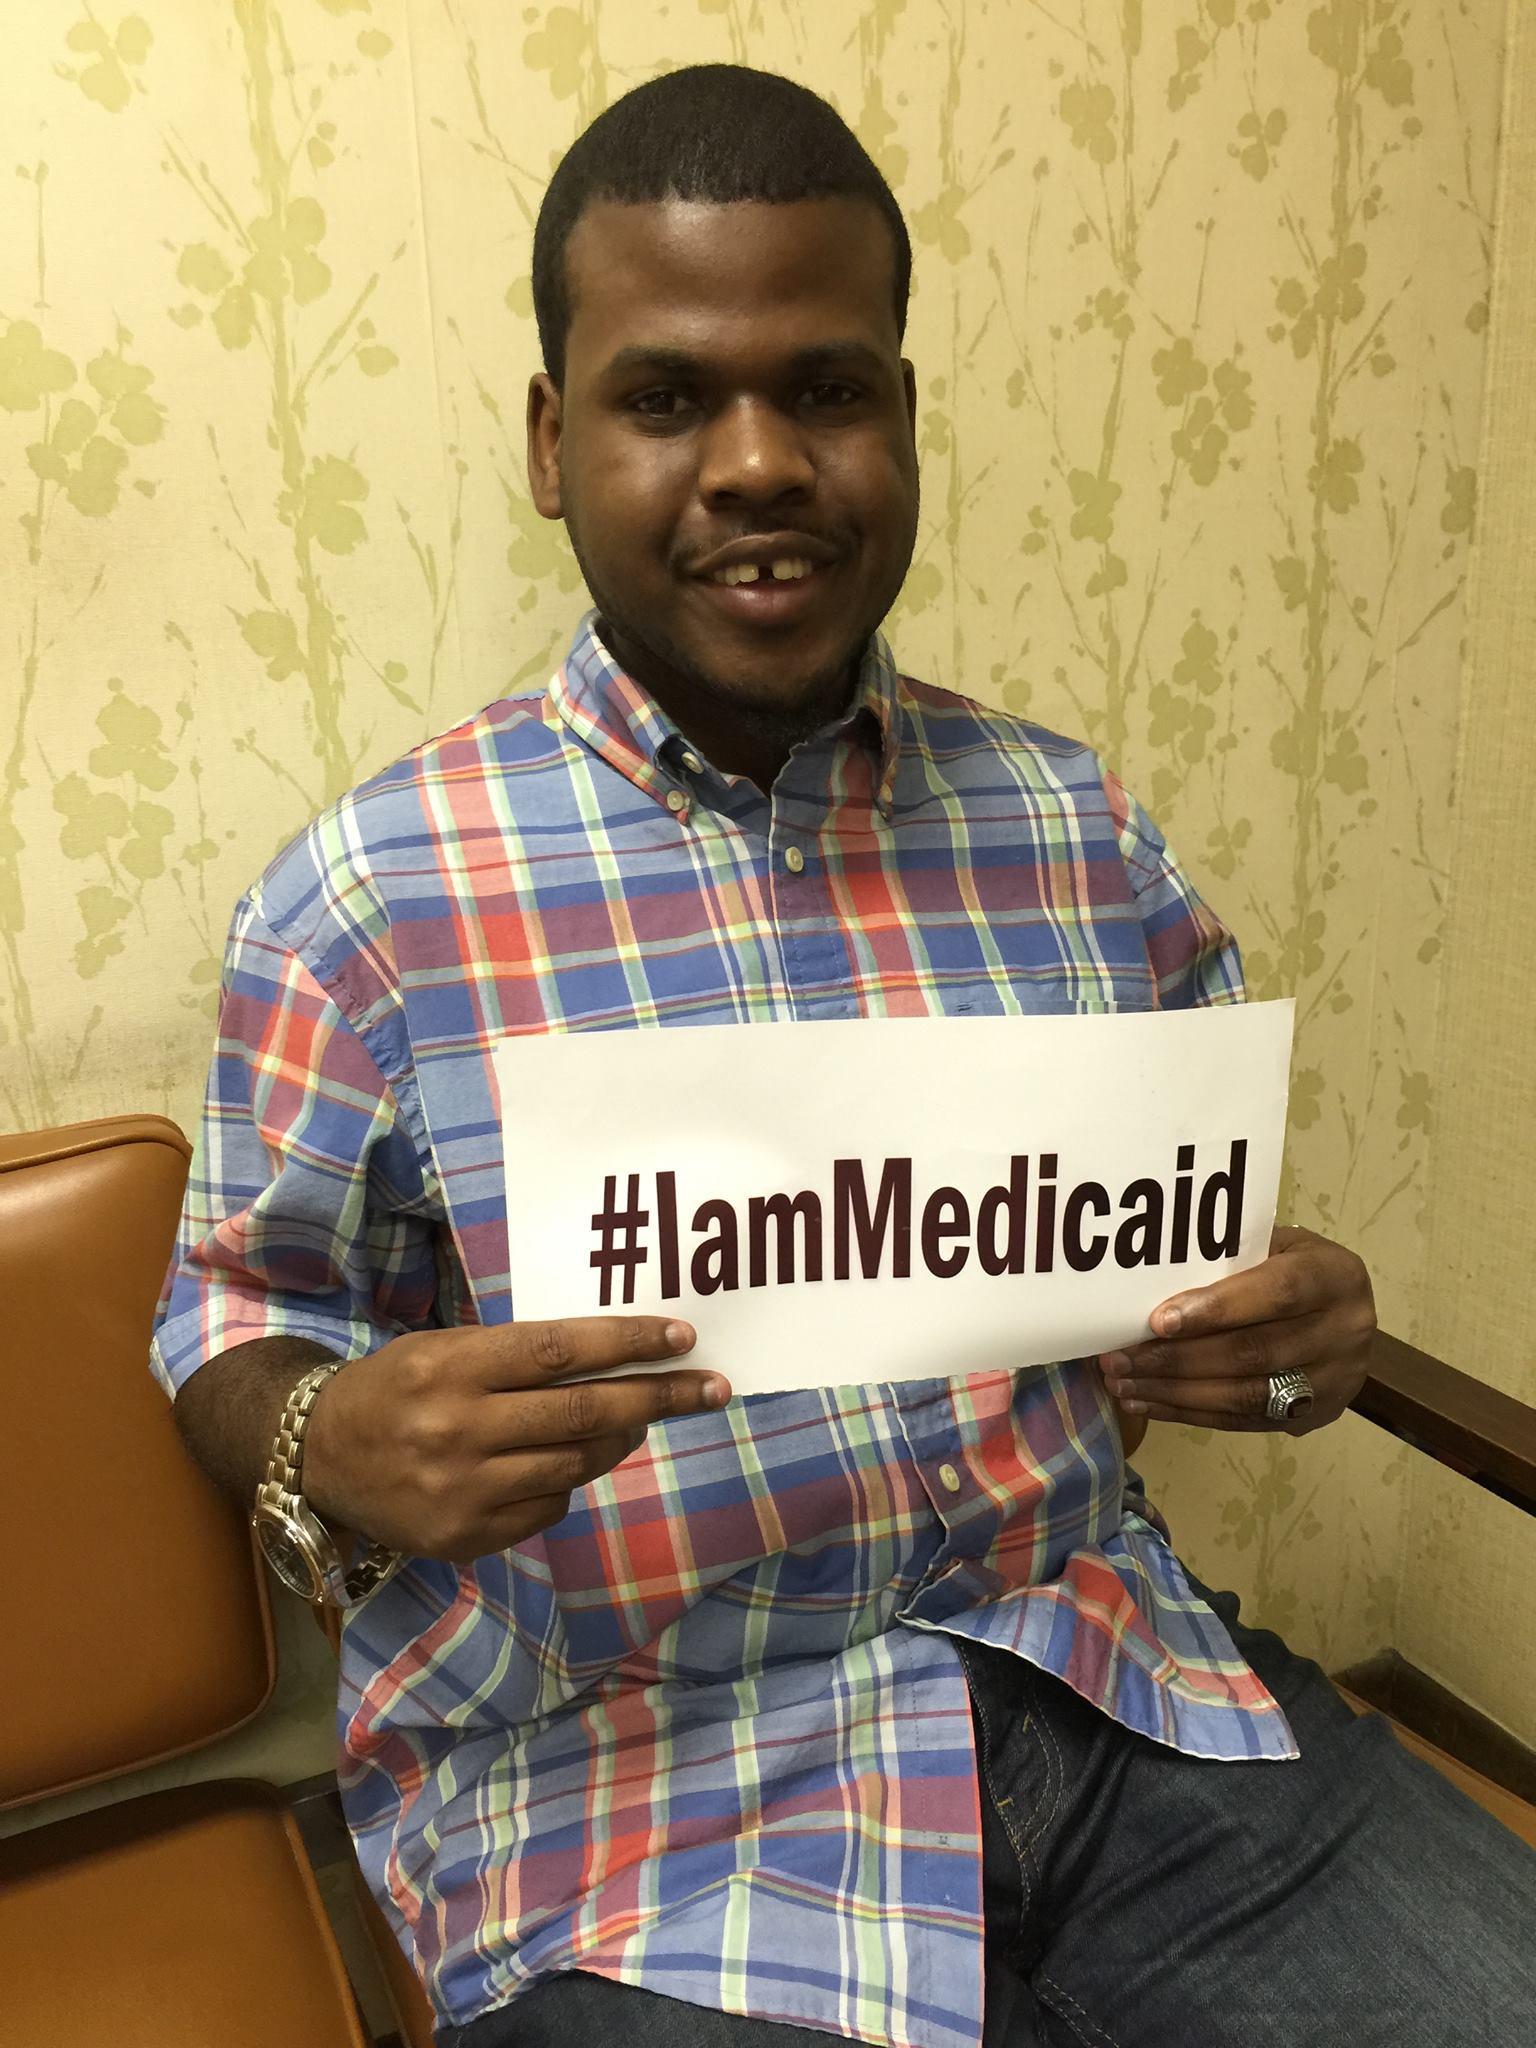 I was born with hydrocephalus and have 2 shunts. 3 years ago I developed a lymphoma. Thank you Medicaid for my care!  ‪   ‪#‎IamMedicaid